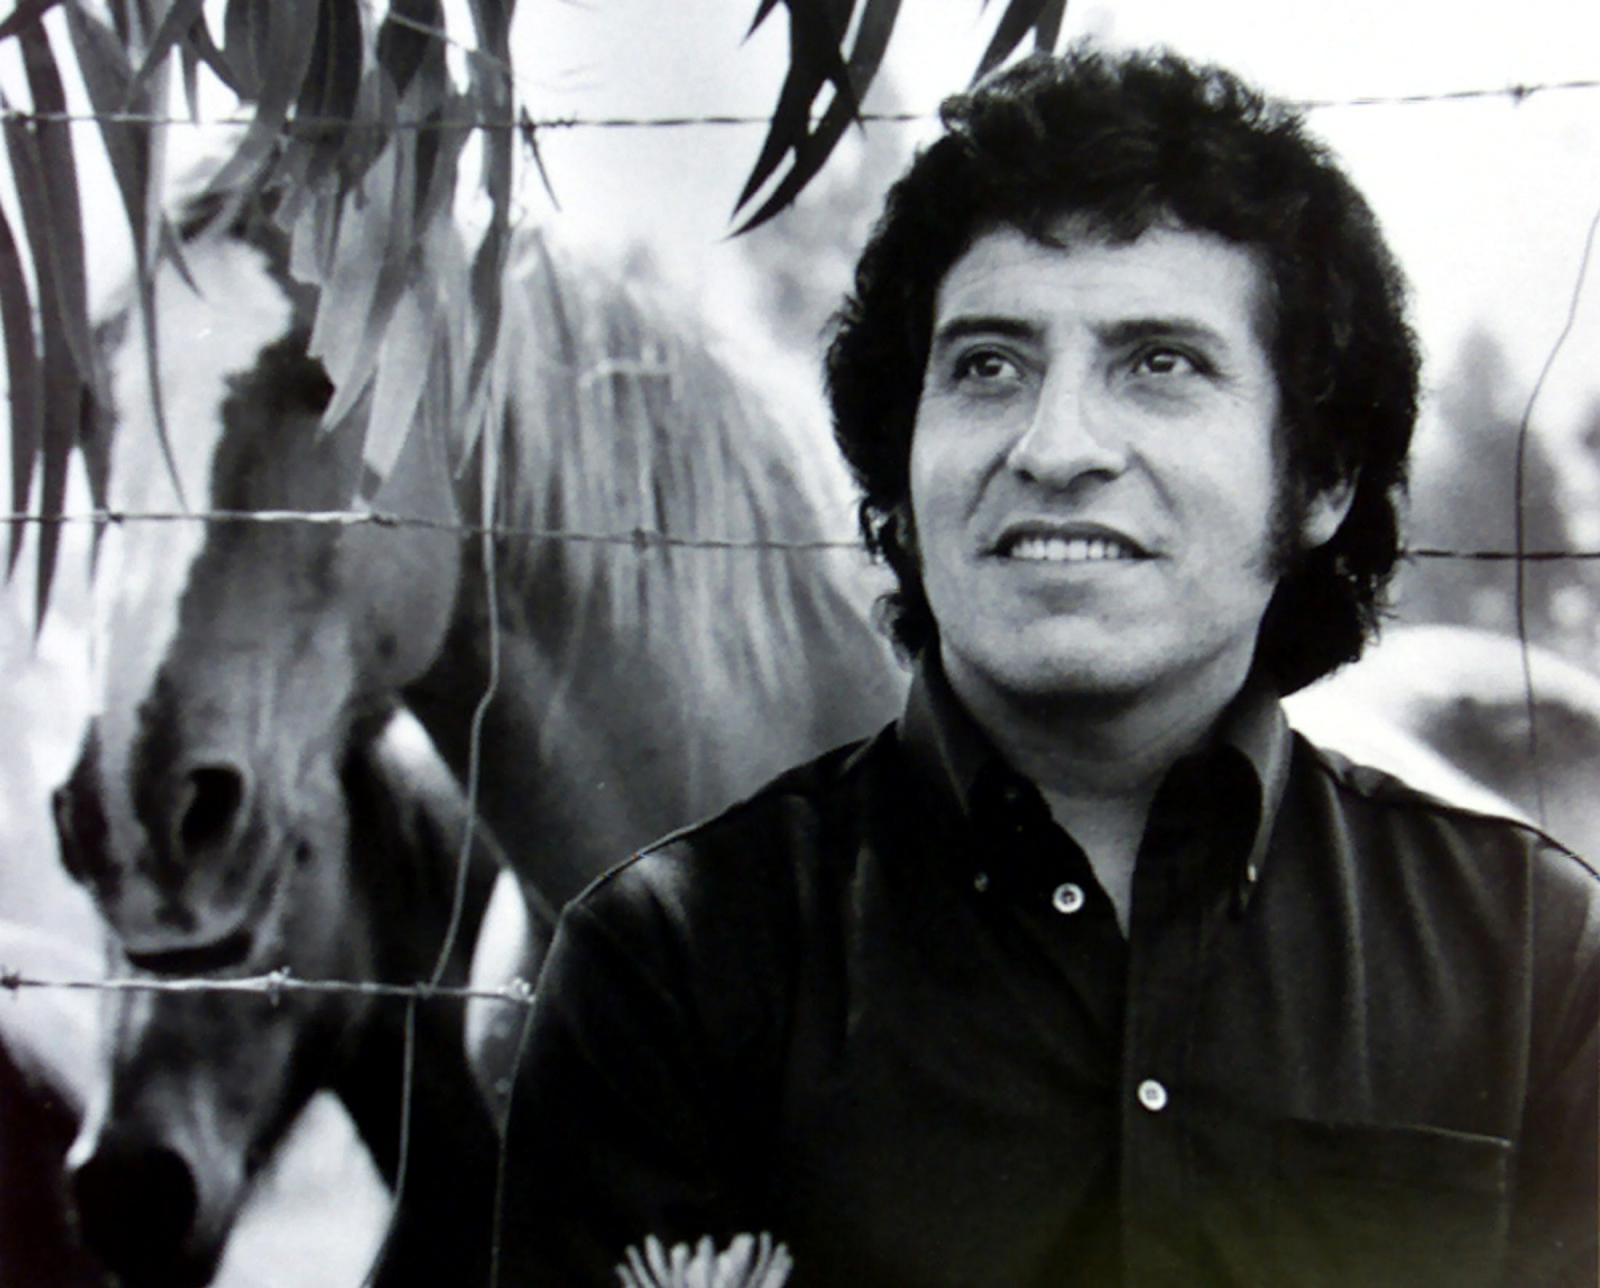 Florida jury found retired Chile officer responsible for death of Victor Jara